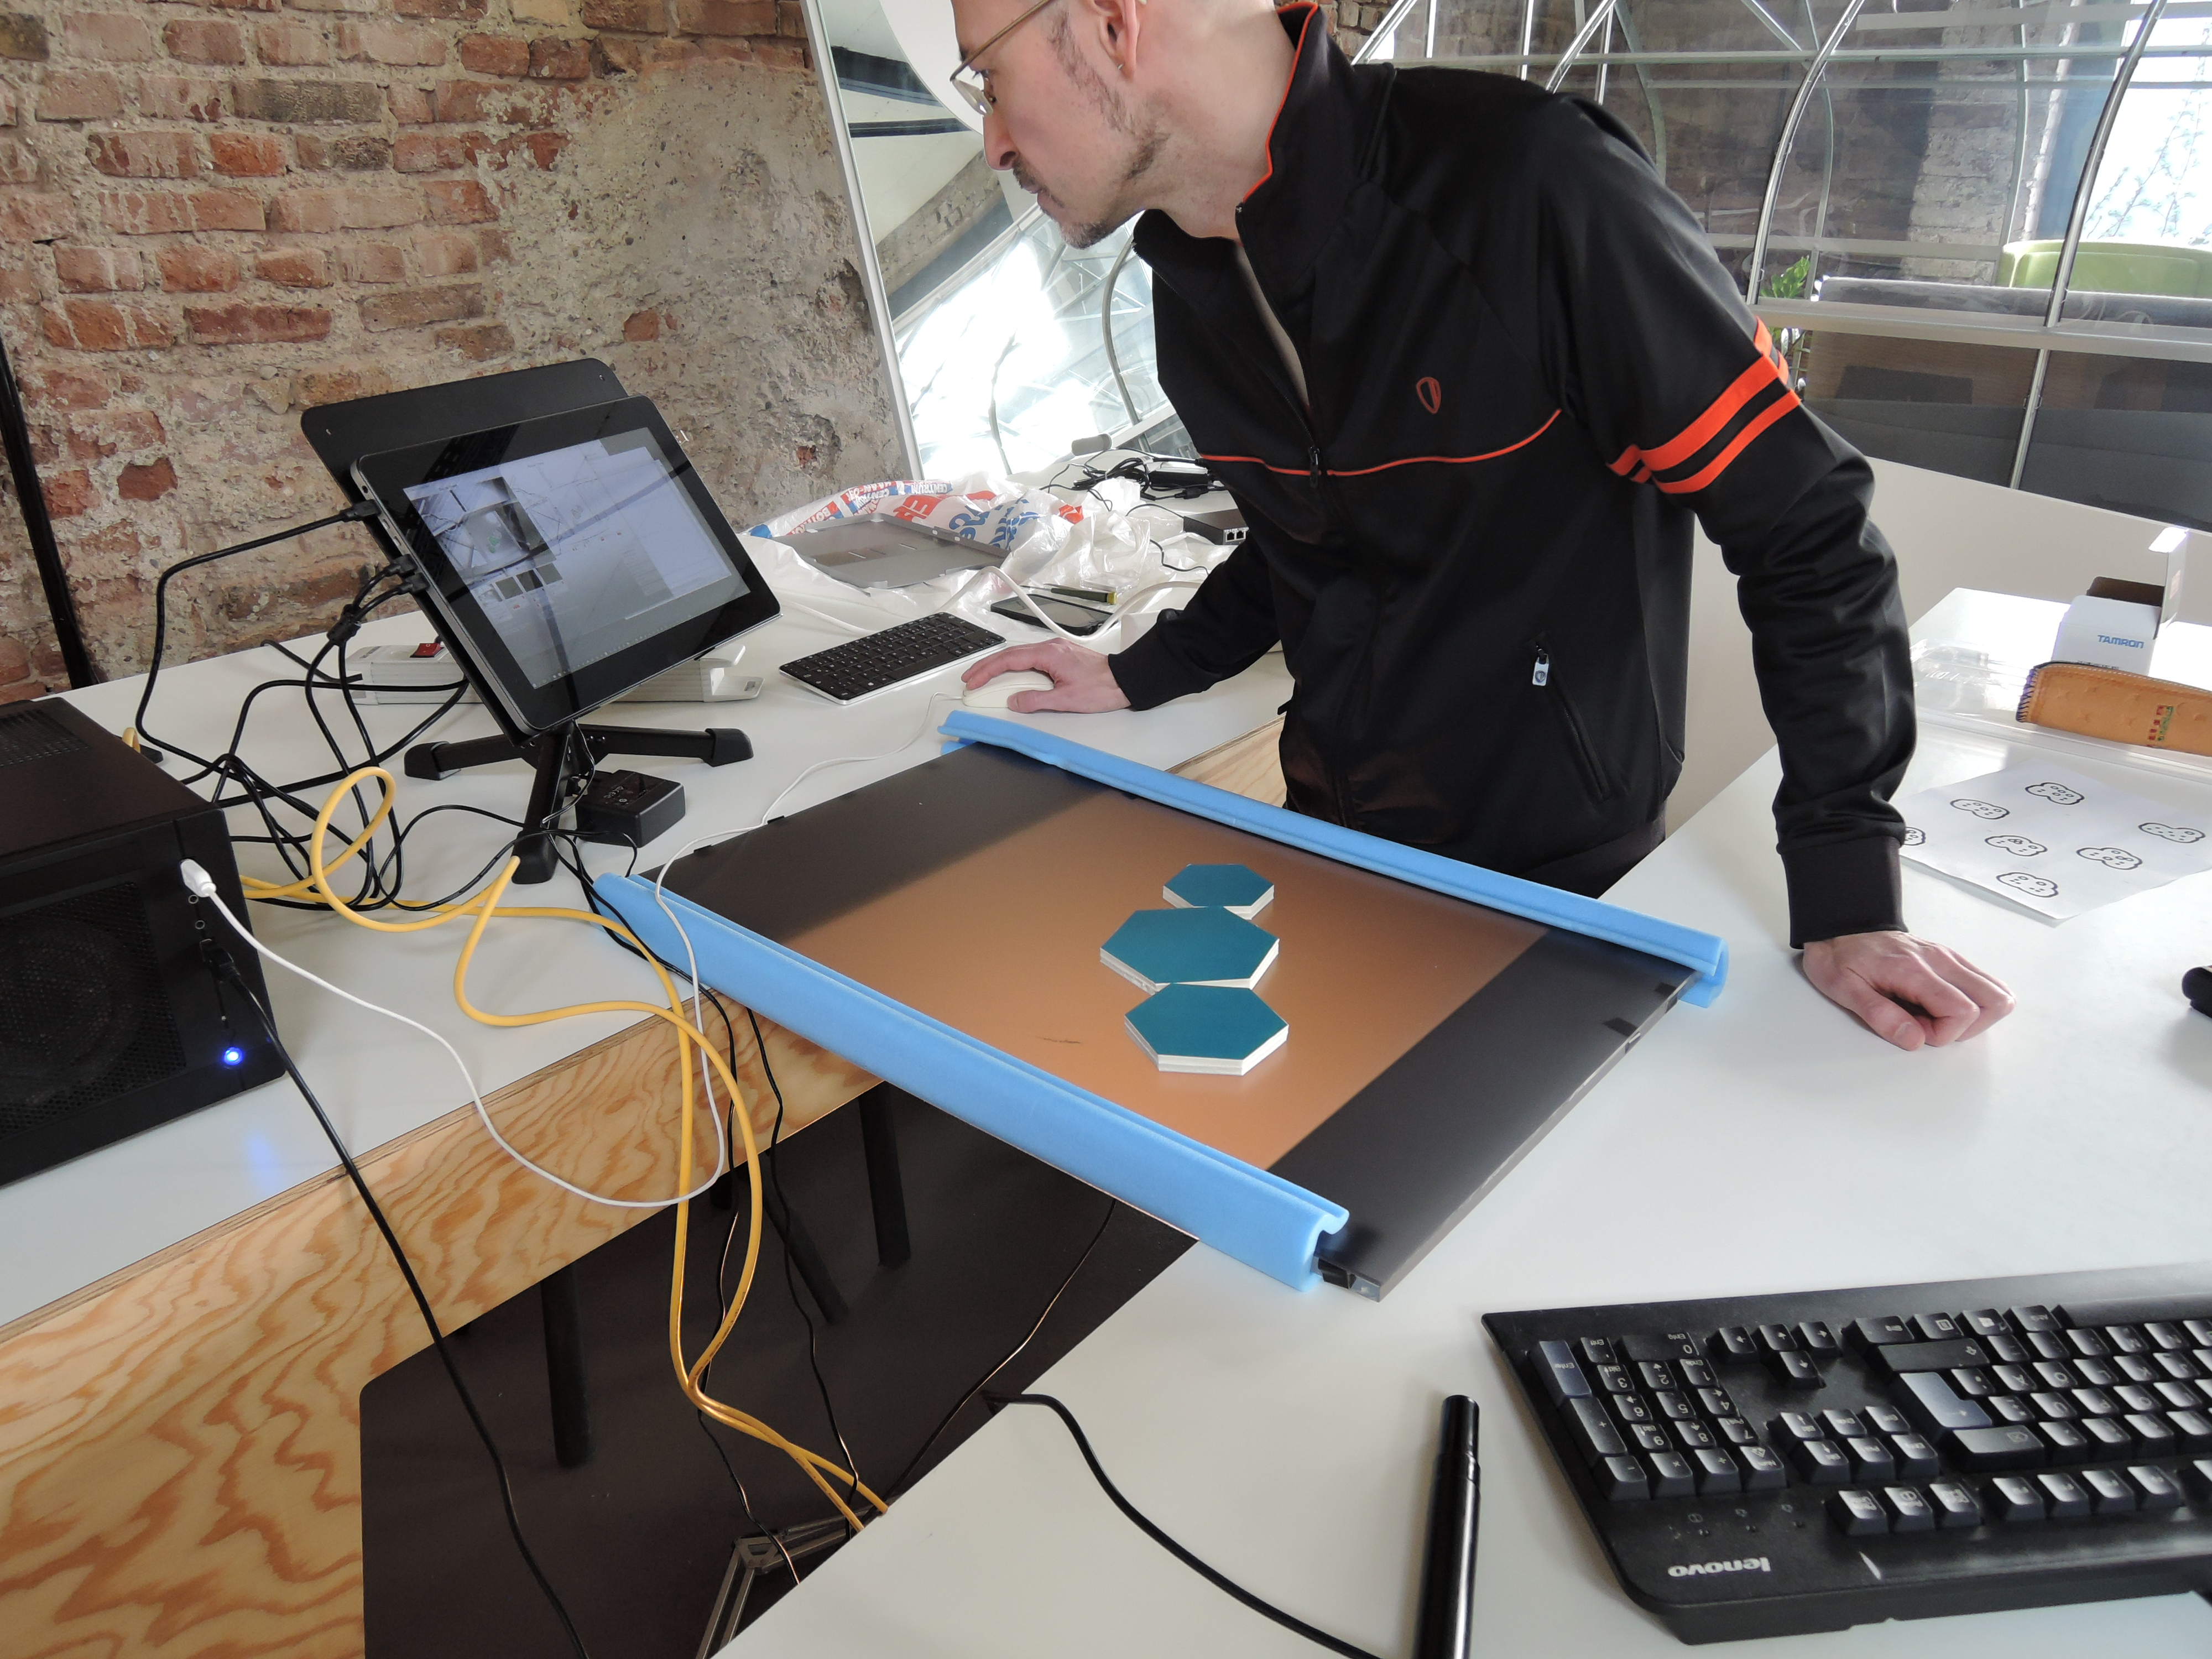 Prototyping in the D.Lab: Tokens are tested with a touch surface